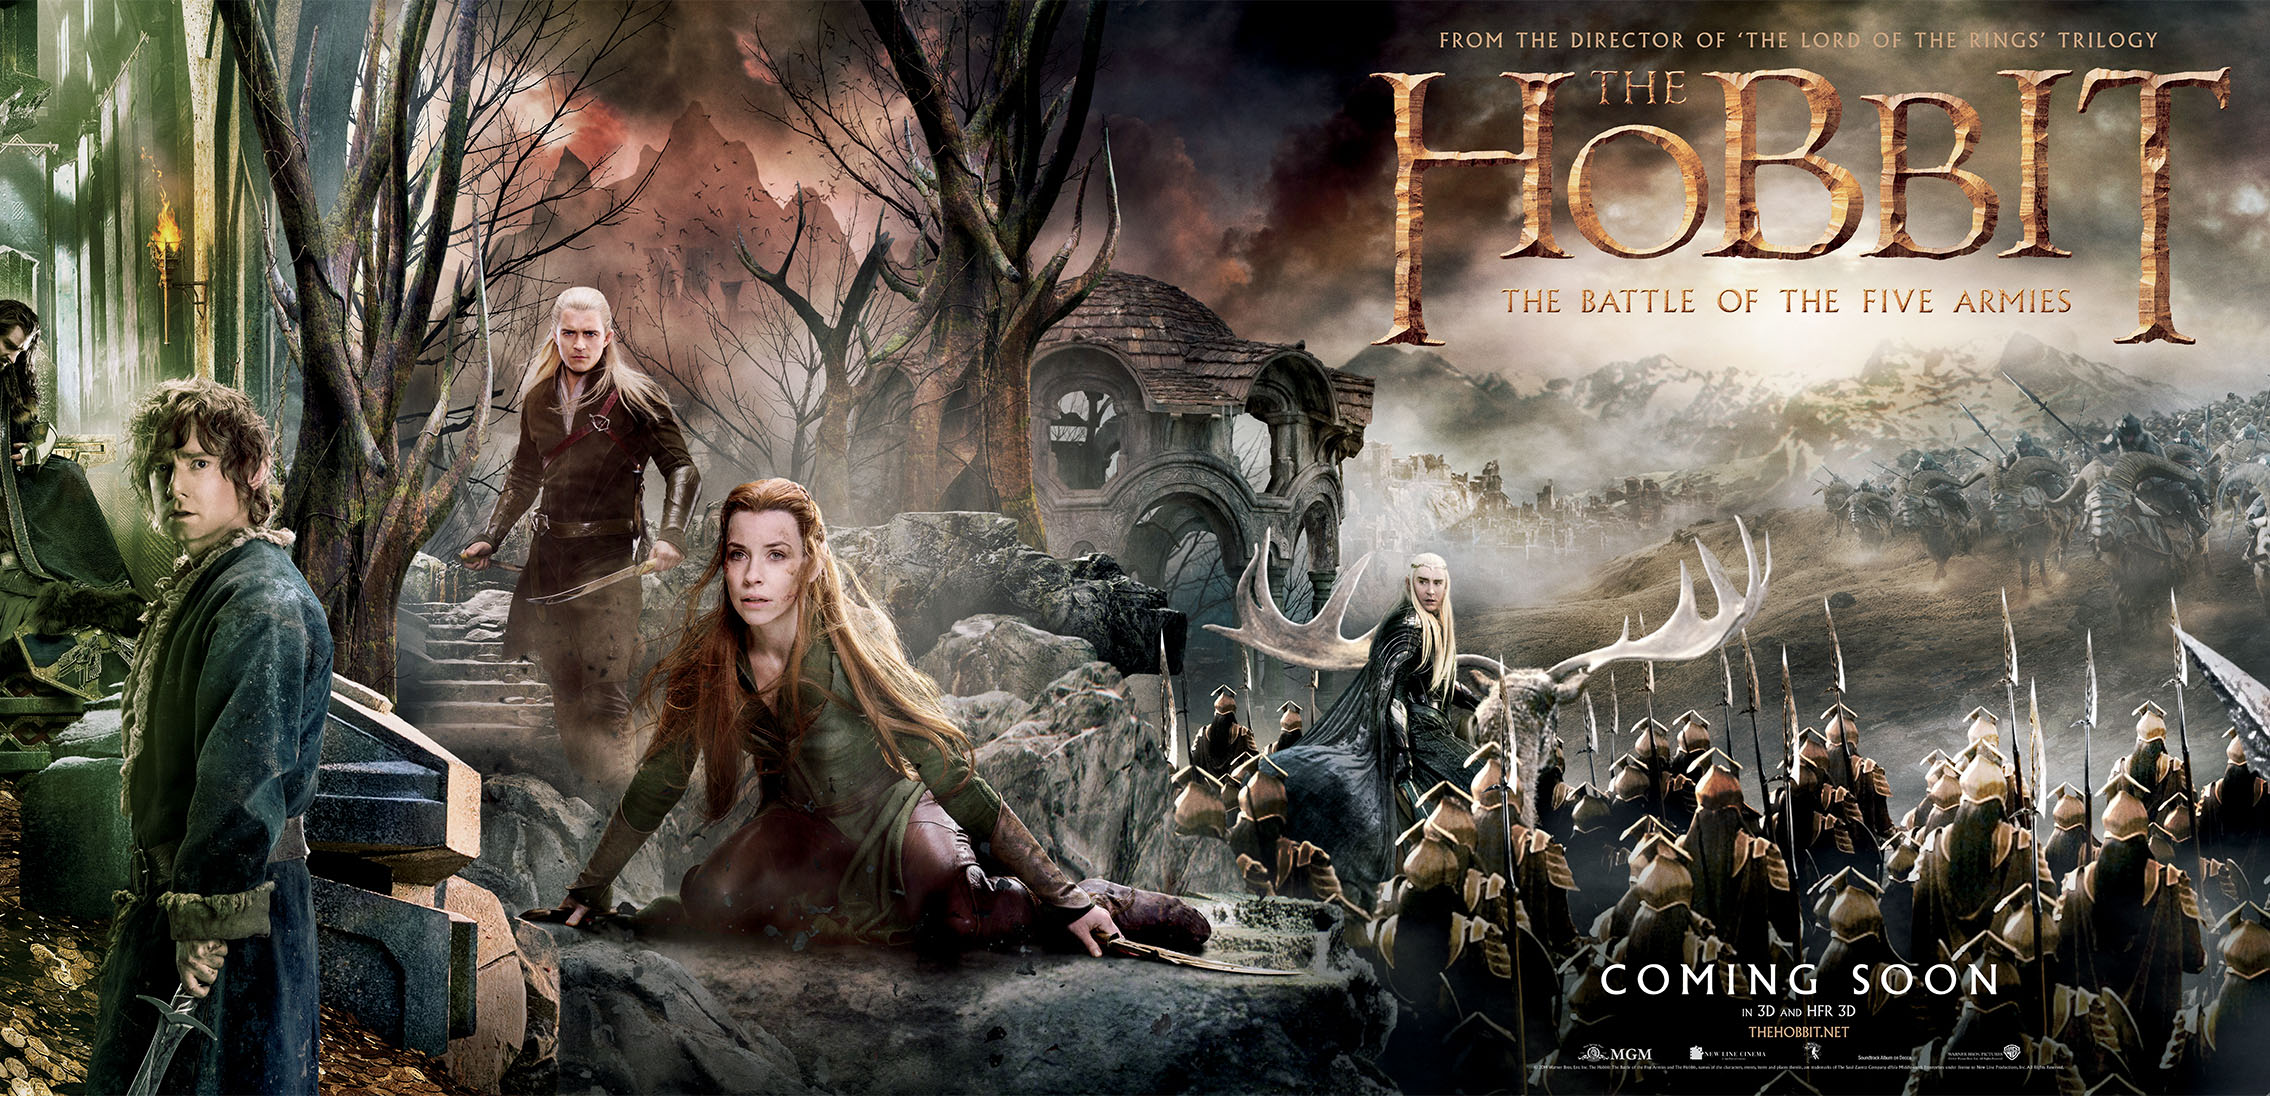 the hobbit a dragons curse essay Overall, the humanoid transformed into a dragon theme is very  account, a  dwarf prince who was transformed into a dragon by a cursed ring, this also   however, in an essay titled notes on motives, tolkien suggests that.